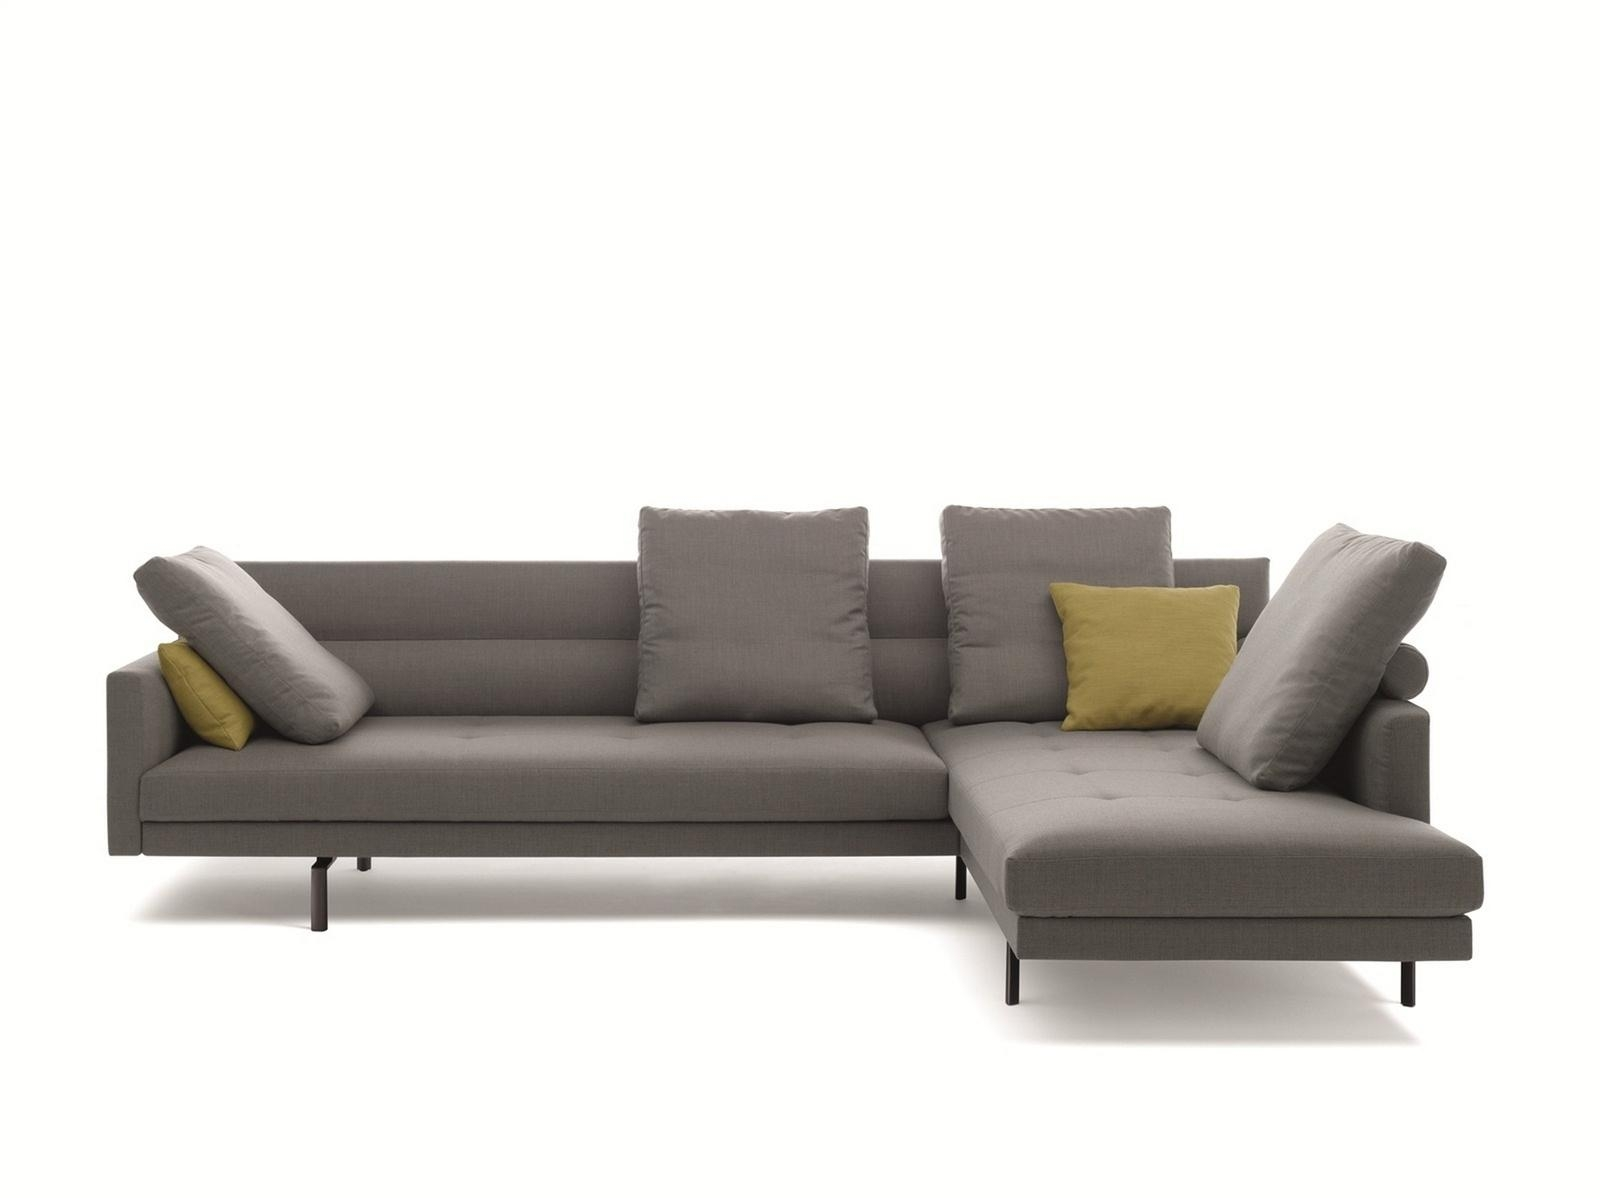 Amazing Walter Knoll Sofa With Leather Sofa Jaan Living Sofa Inside Knoll Sofas (Image 1 of 20)